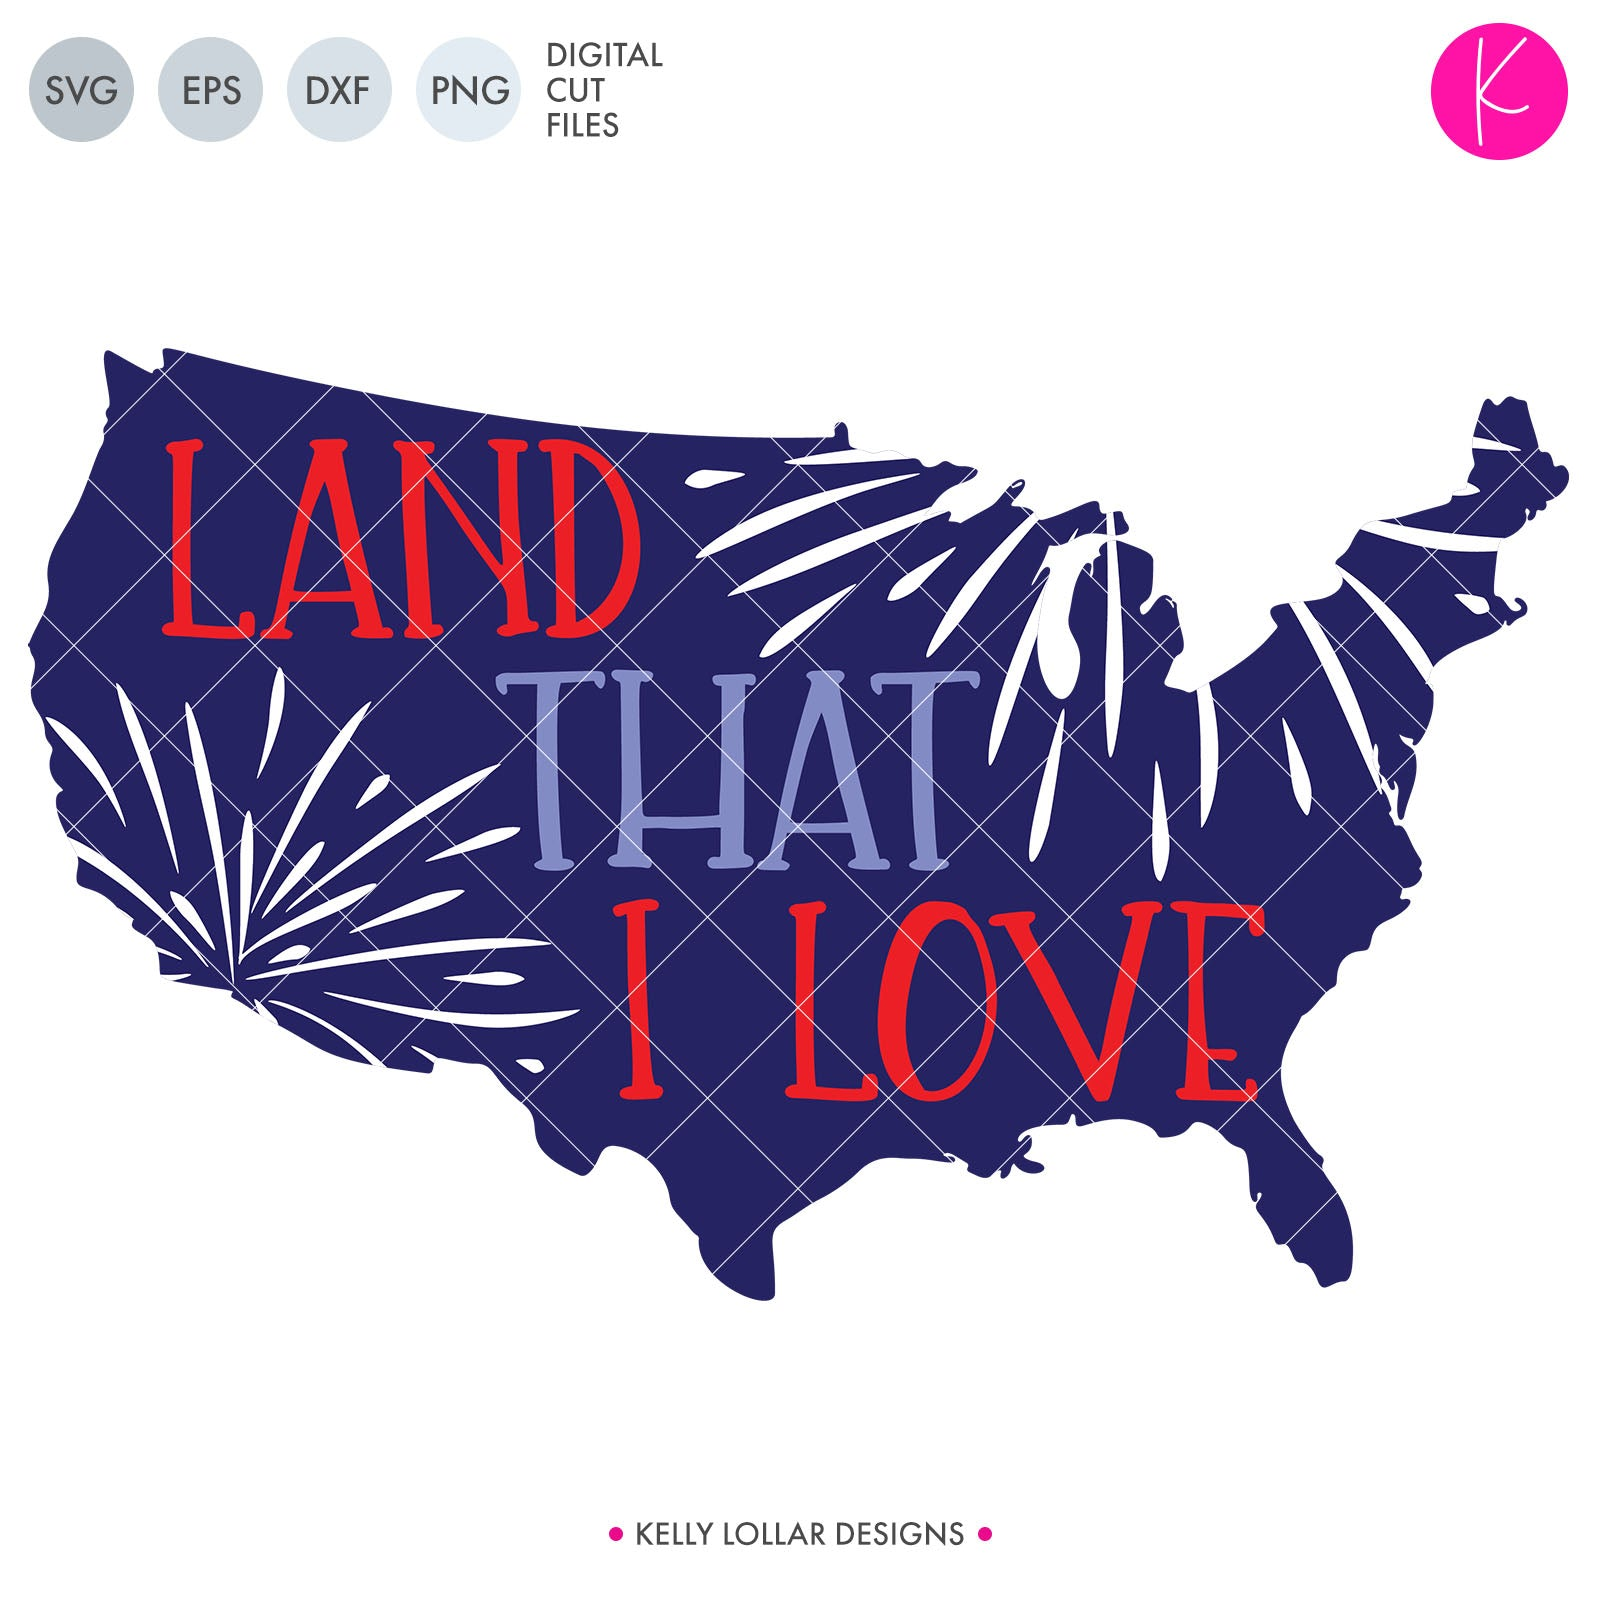 Land That I Love svg - United States Silhouette with Fireworks and Quote for 4th of July Shirts and Decor | SVG DXF PNG Cut Files